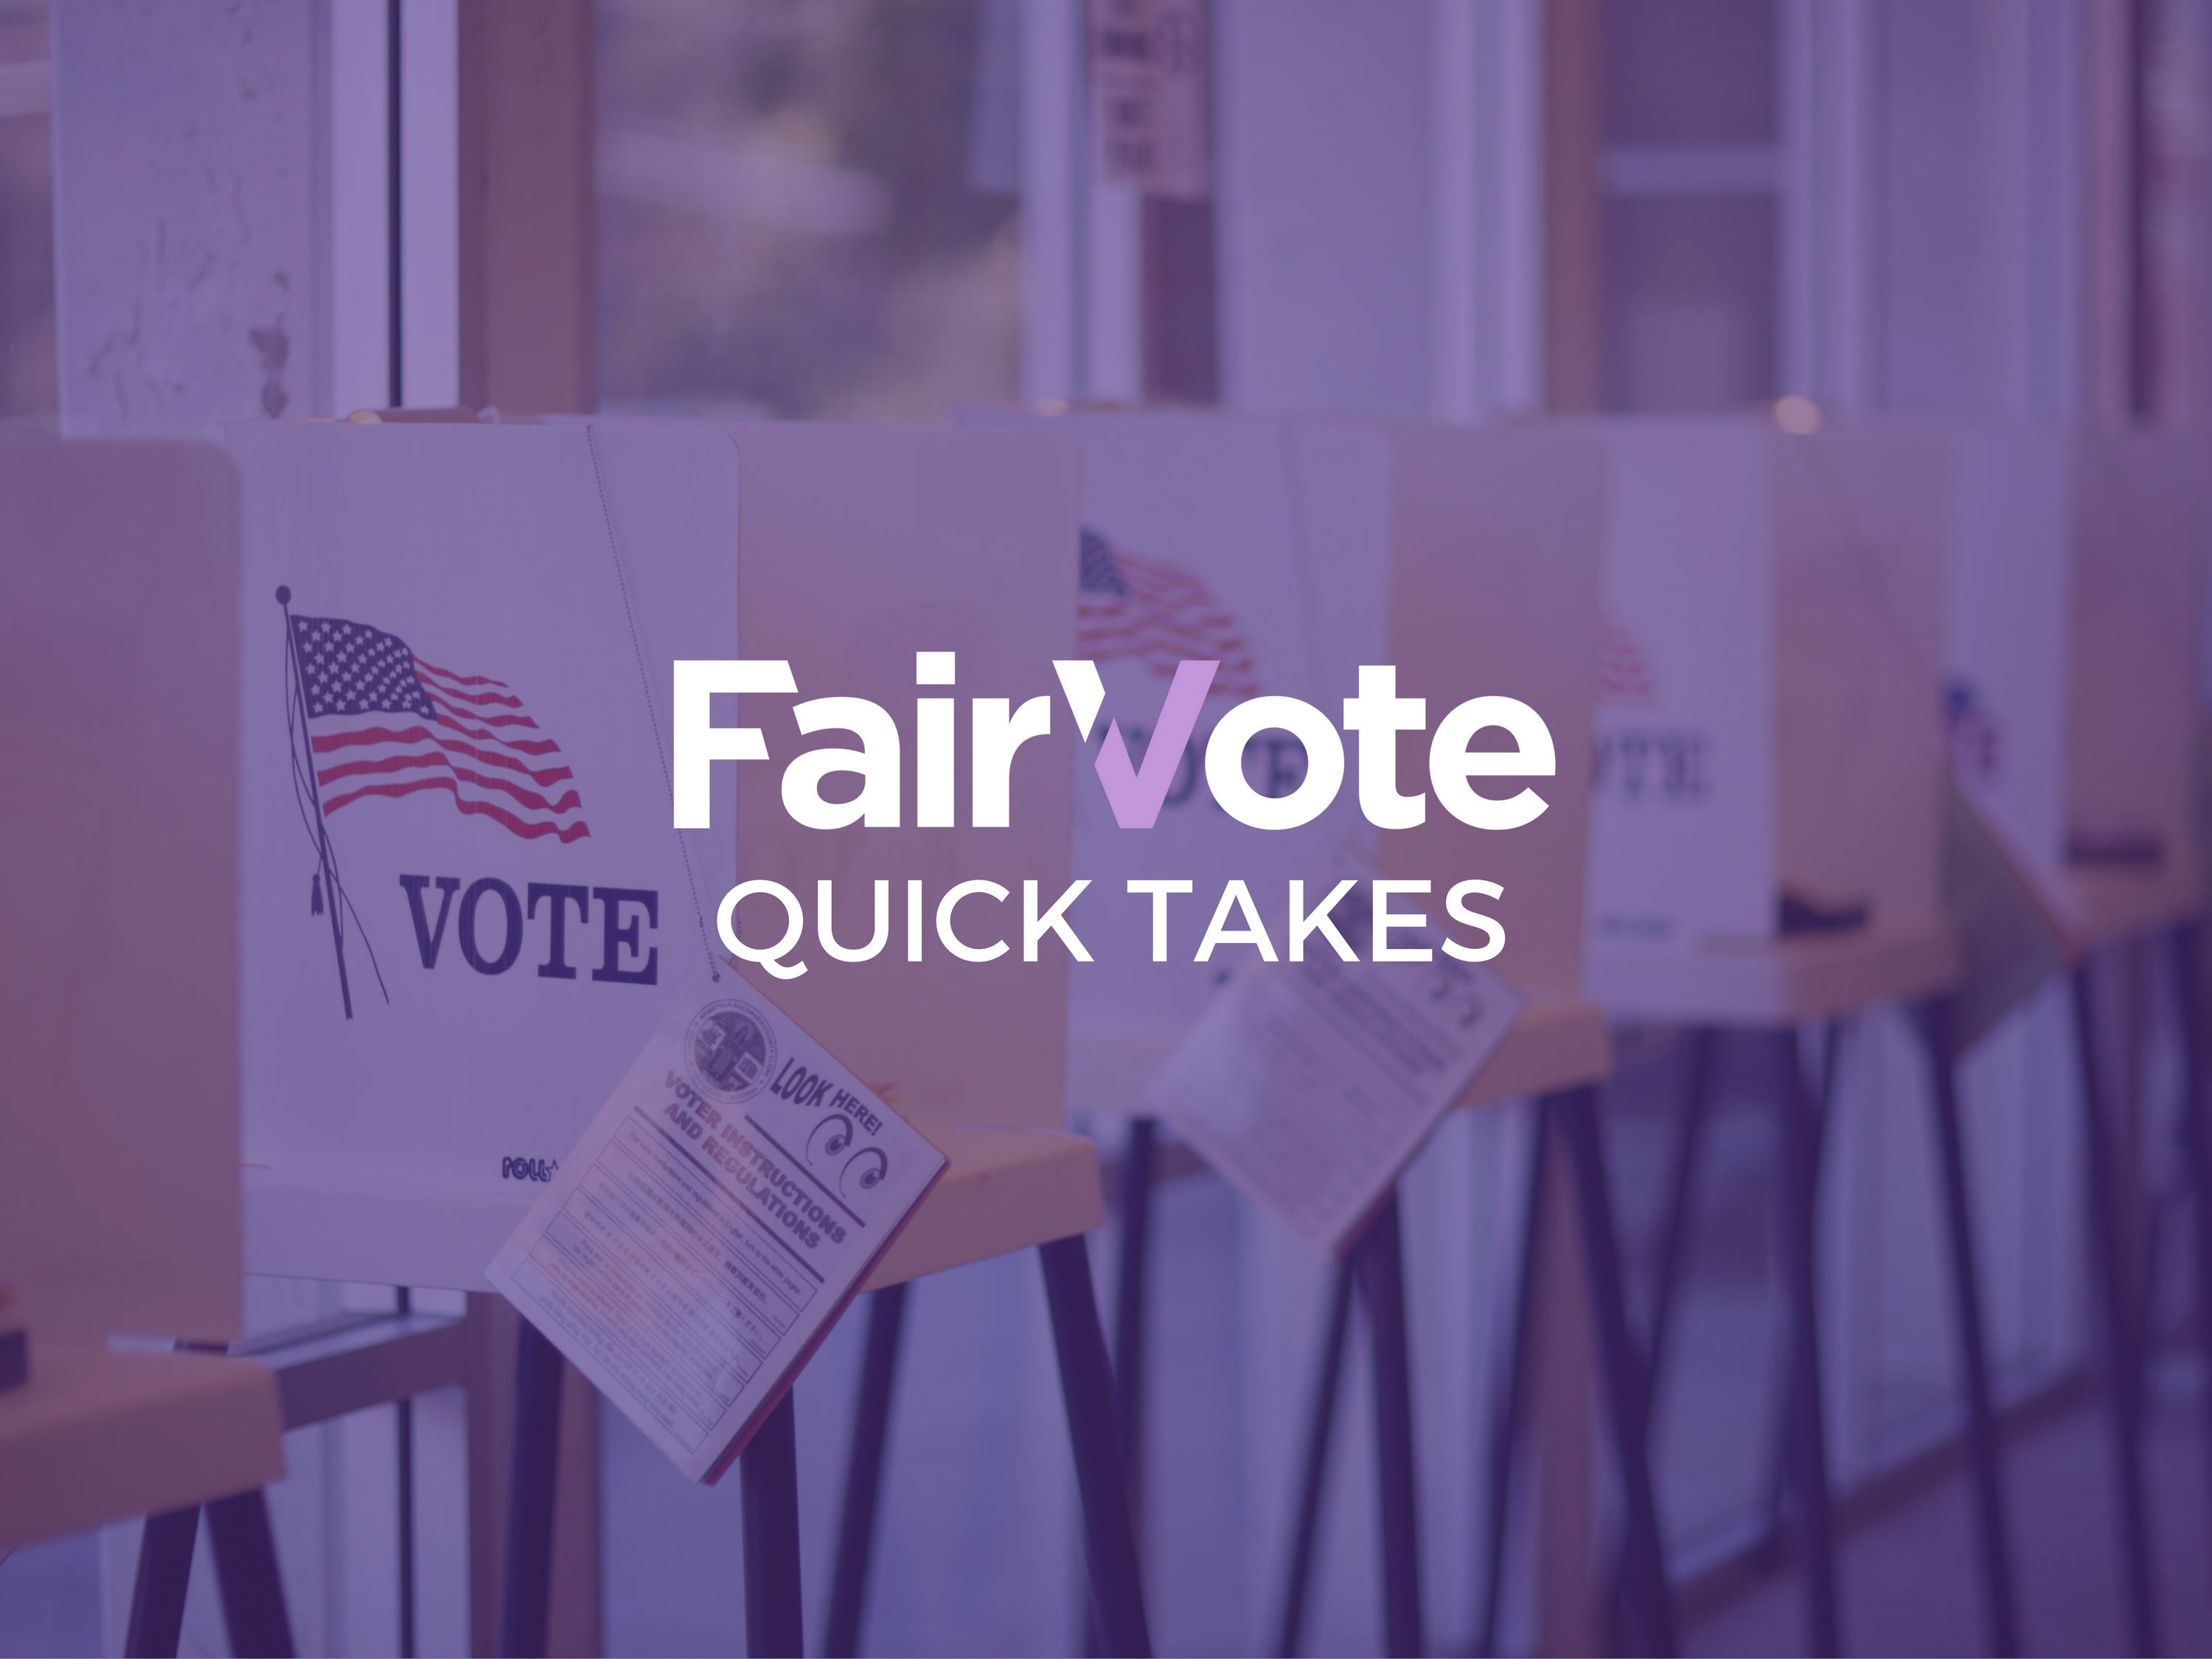 St. Olaf College to Use Ranked Choice Voting in 2018